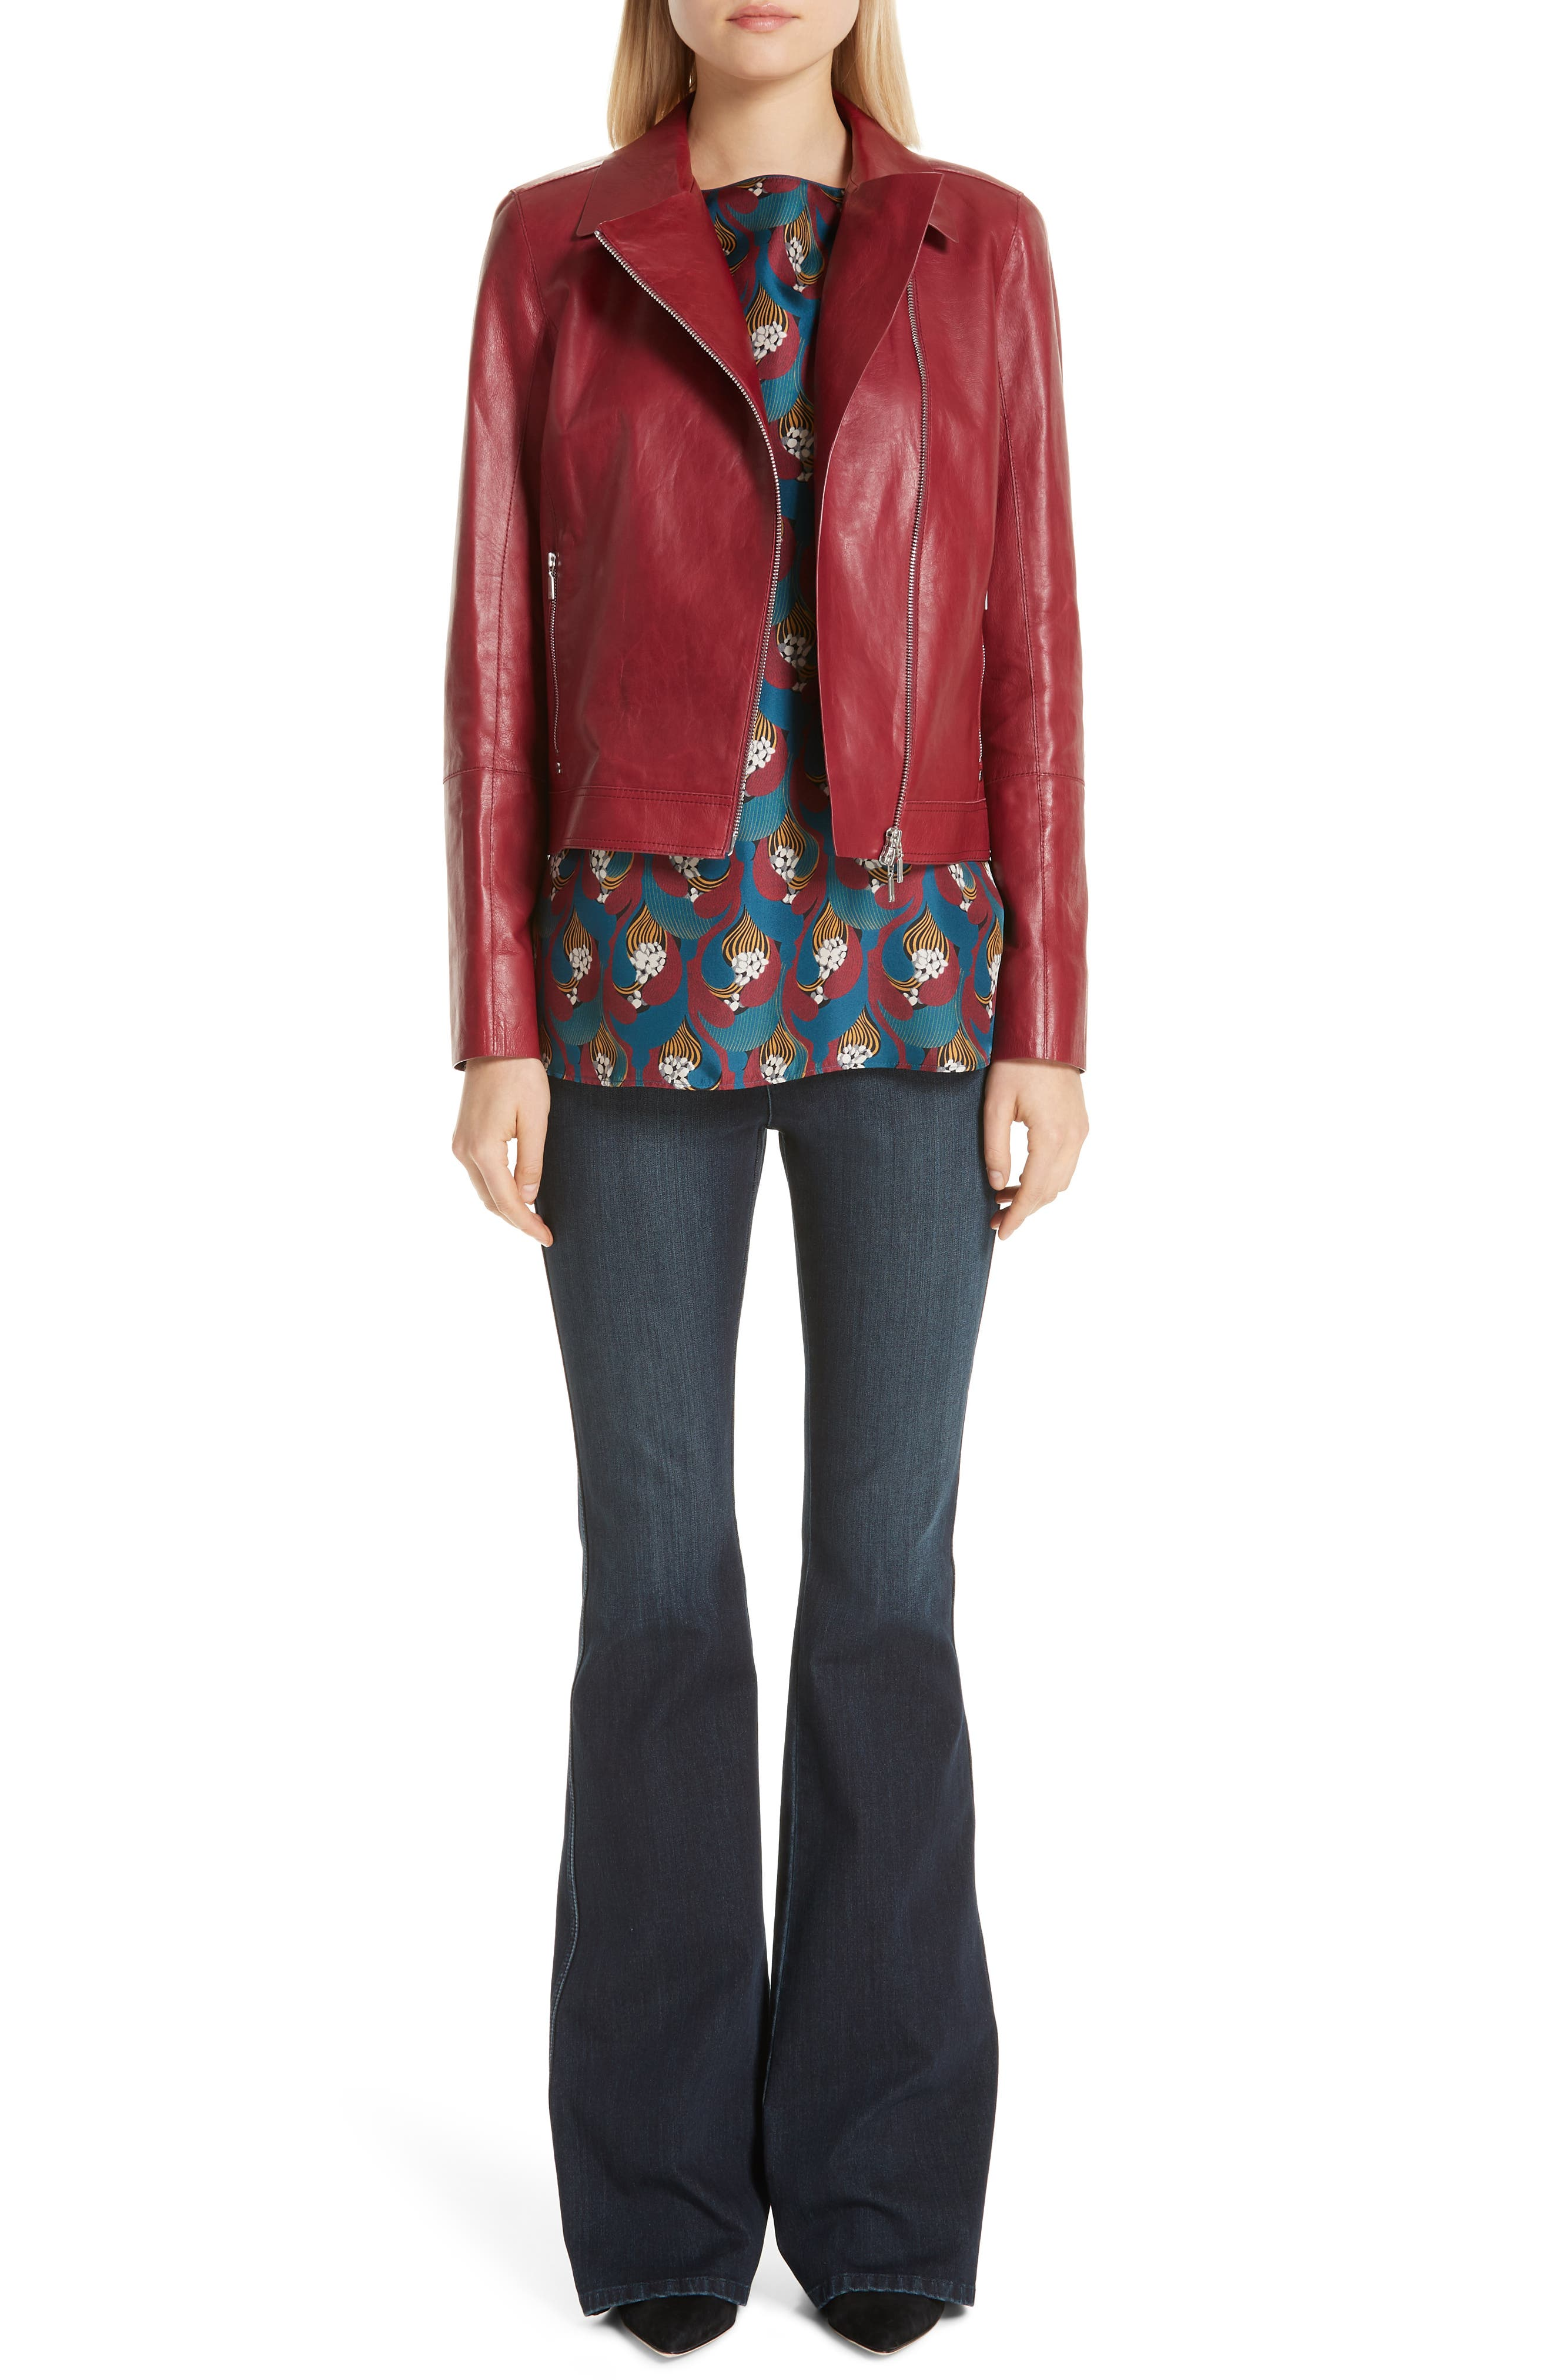 LAFAYETTE 148 NEW YORK, Marykate Leather Moto Jacket, Alternate thumbnail 7, color, 600